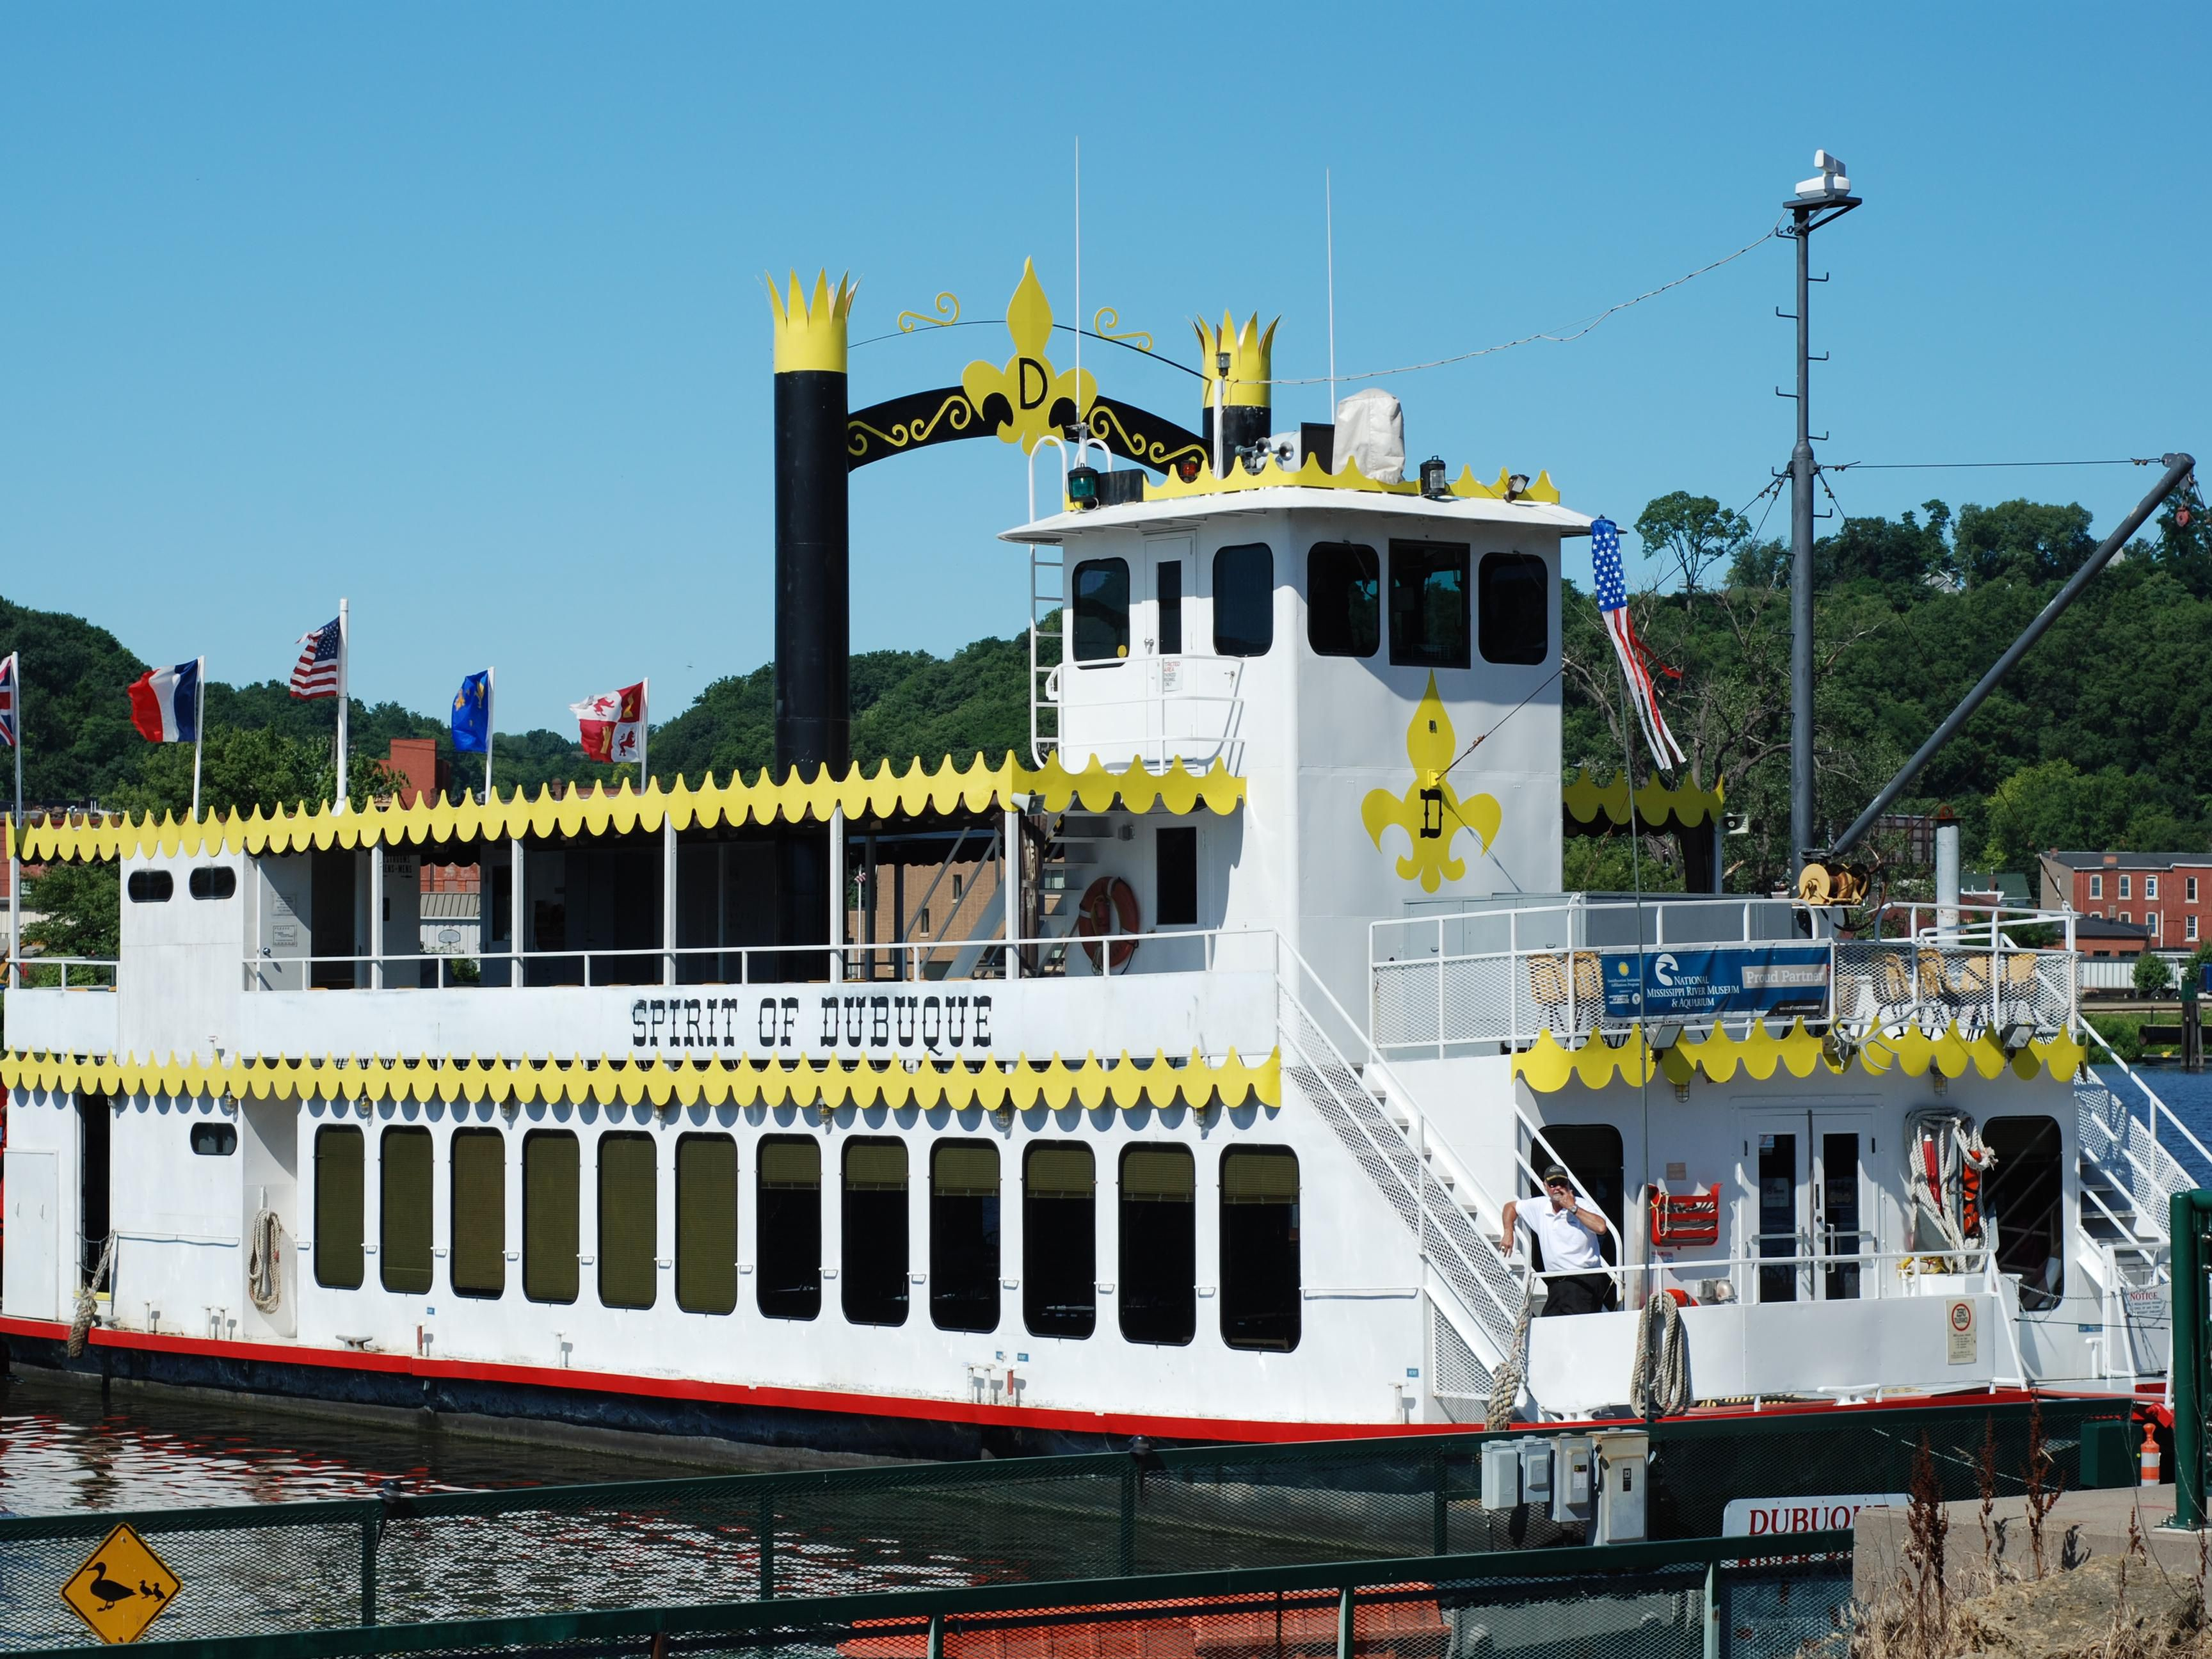 Cruise the Spirit of Dubuque for sightseeing or dinner